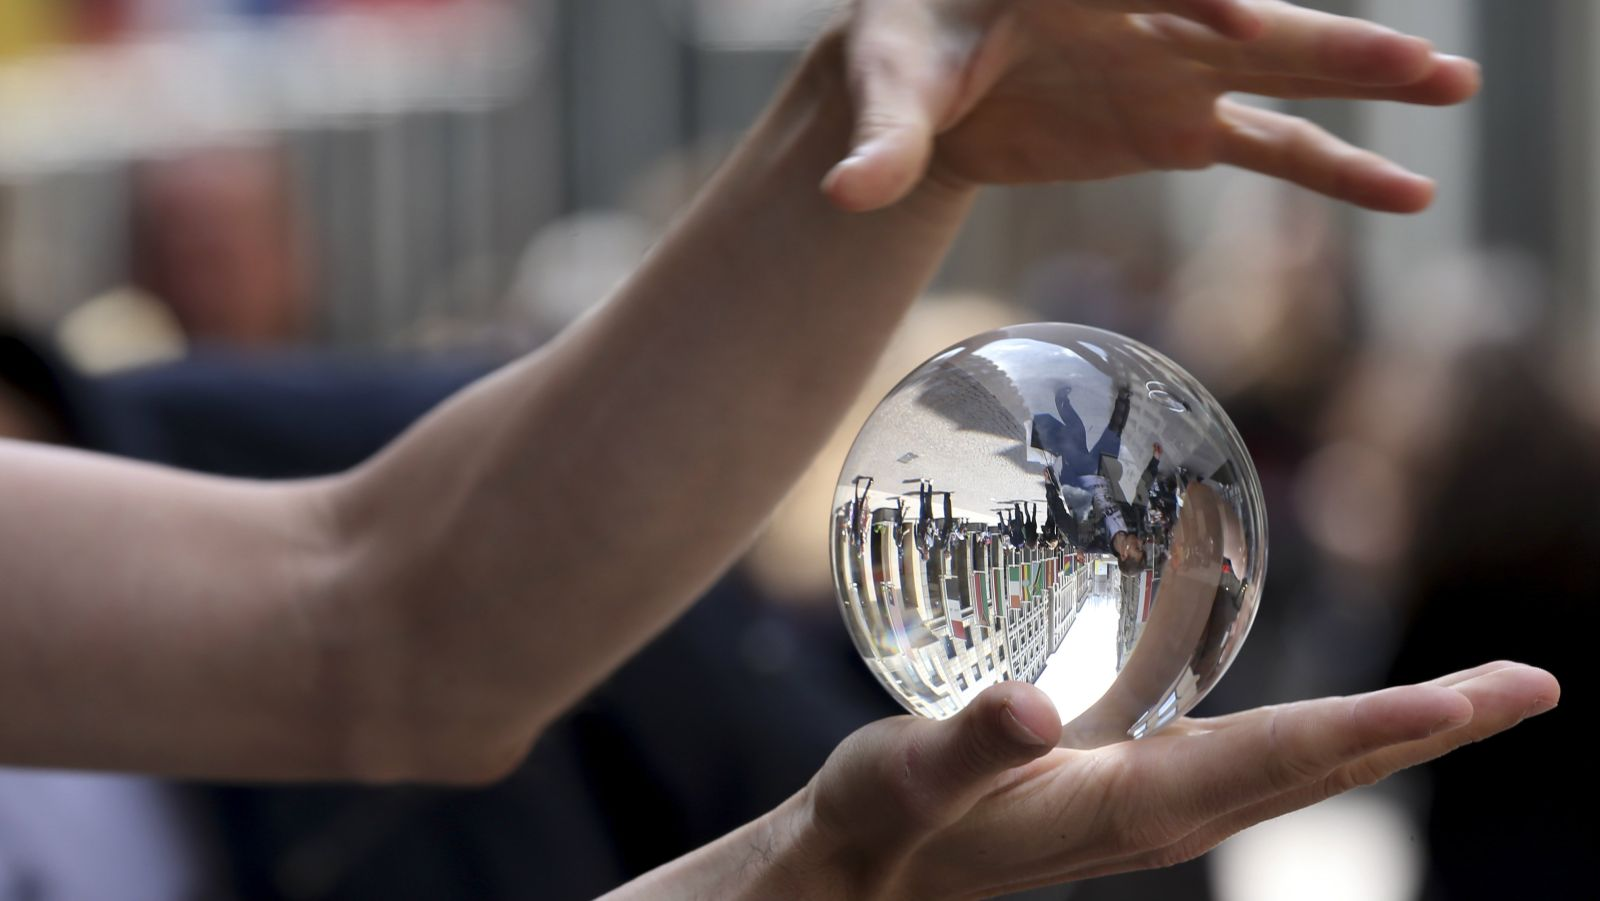 Tom Atto, a street artist from Slovakia, performs with a crystal ball in Milan, Italy, Wednesday, May 29, 2013. (AP Photo/Luca Bruno)